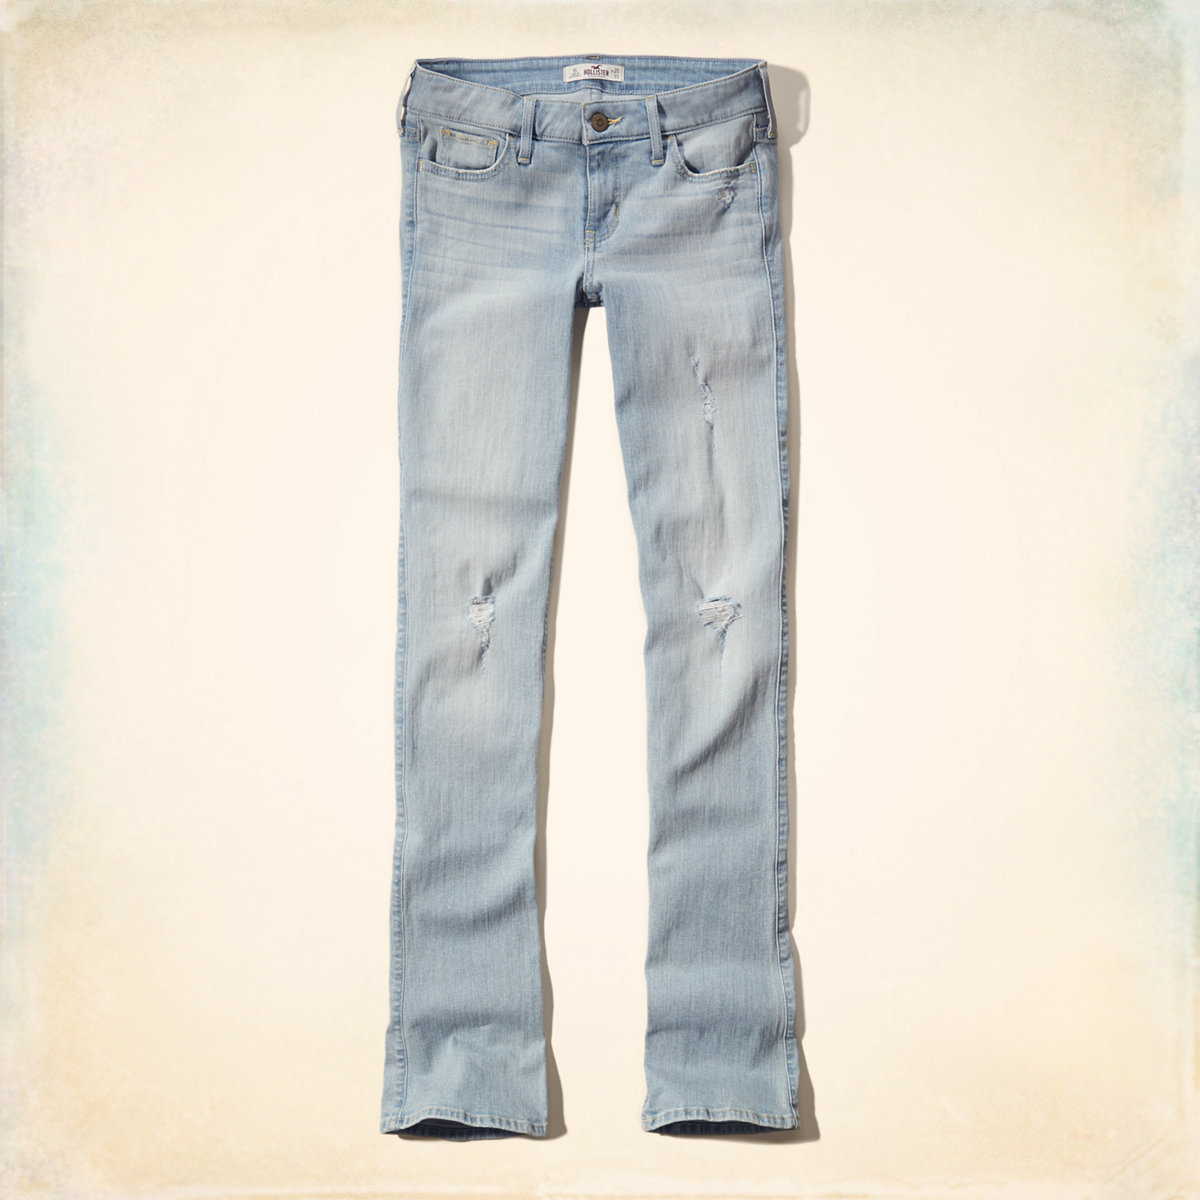 Low-Rise Boot Jeans